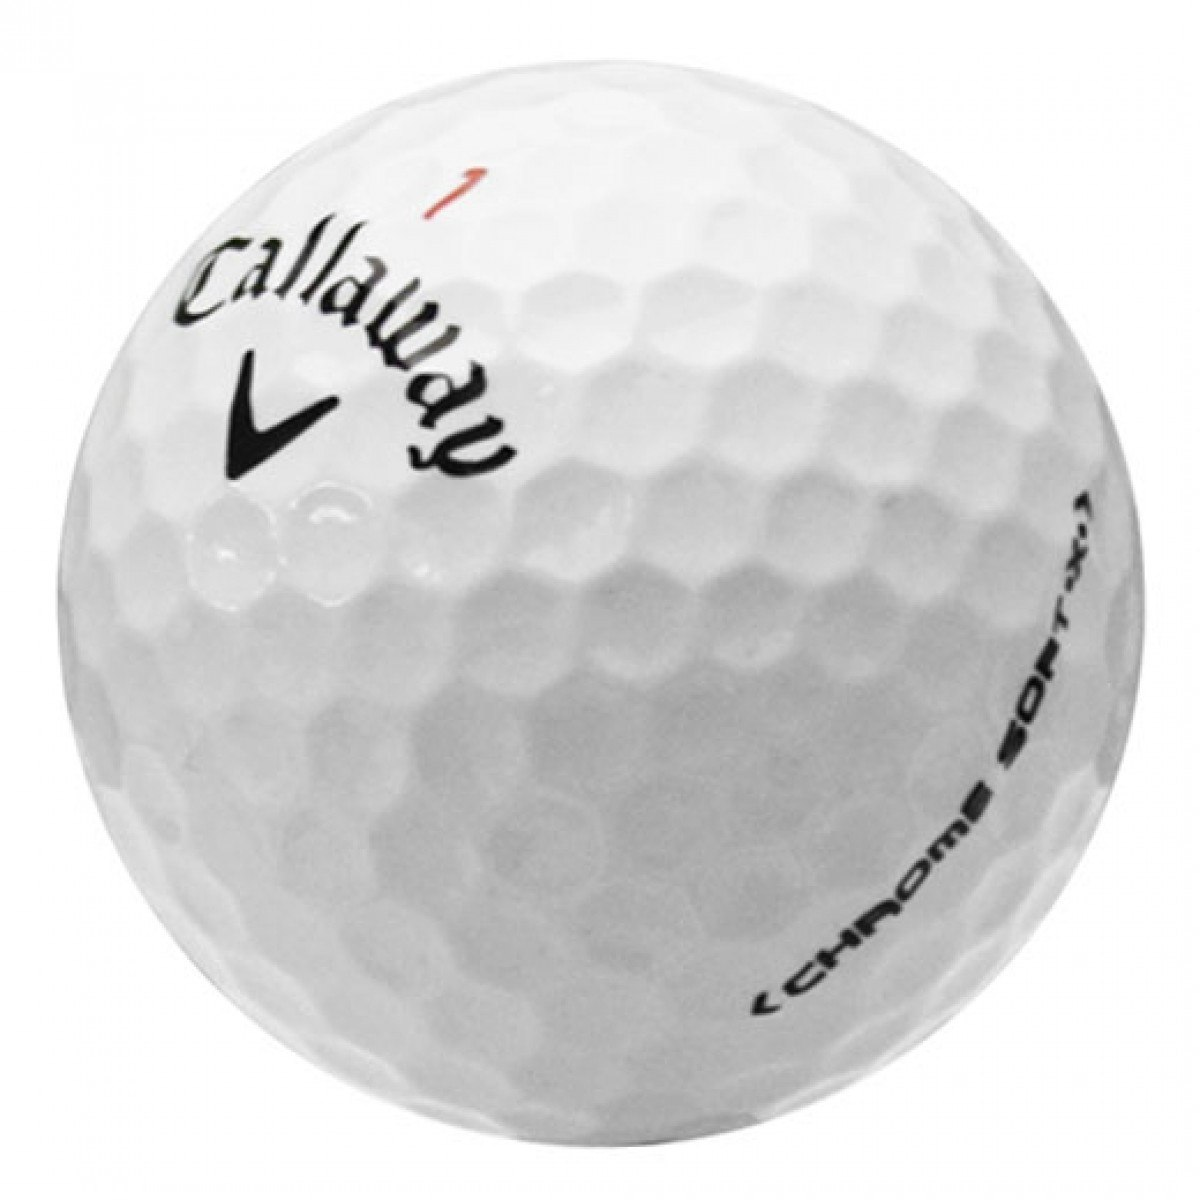 best golf balls for 100 mph swing speed high swing speed heaven